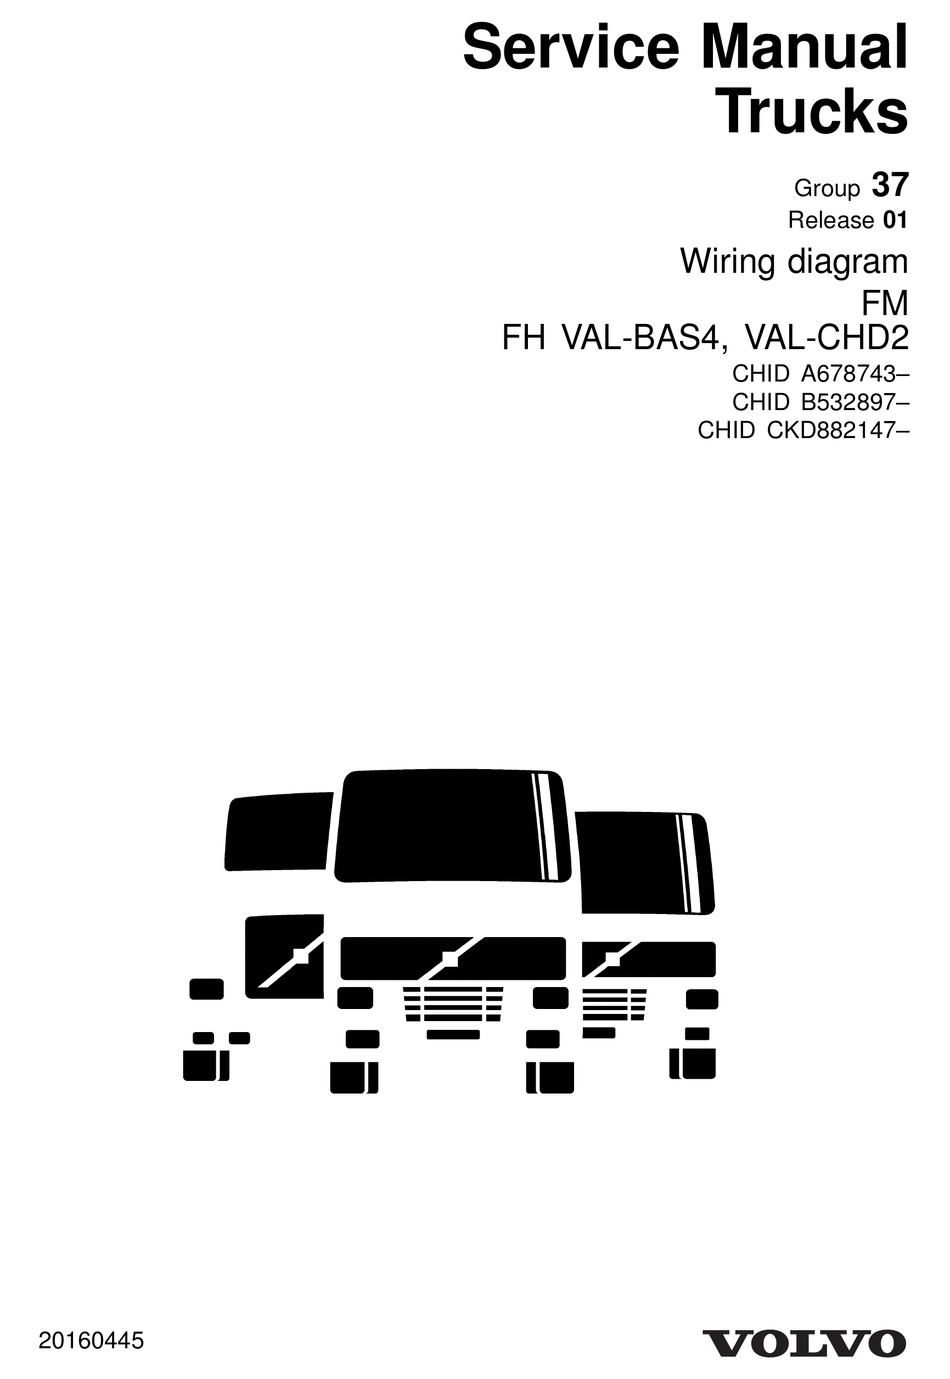 volvo fm series wiring diagram pdf download | manualslib  manualslib